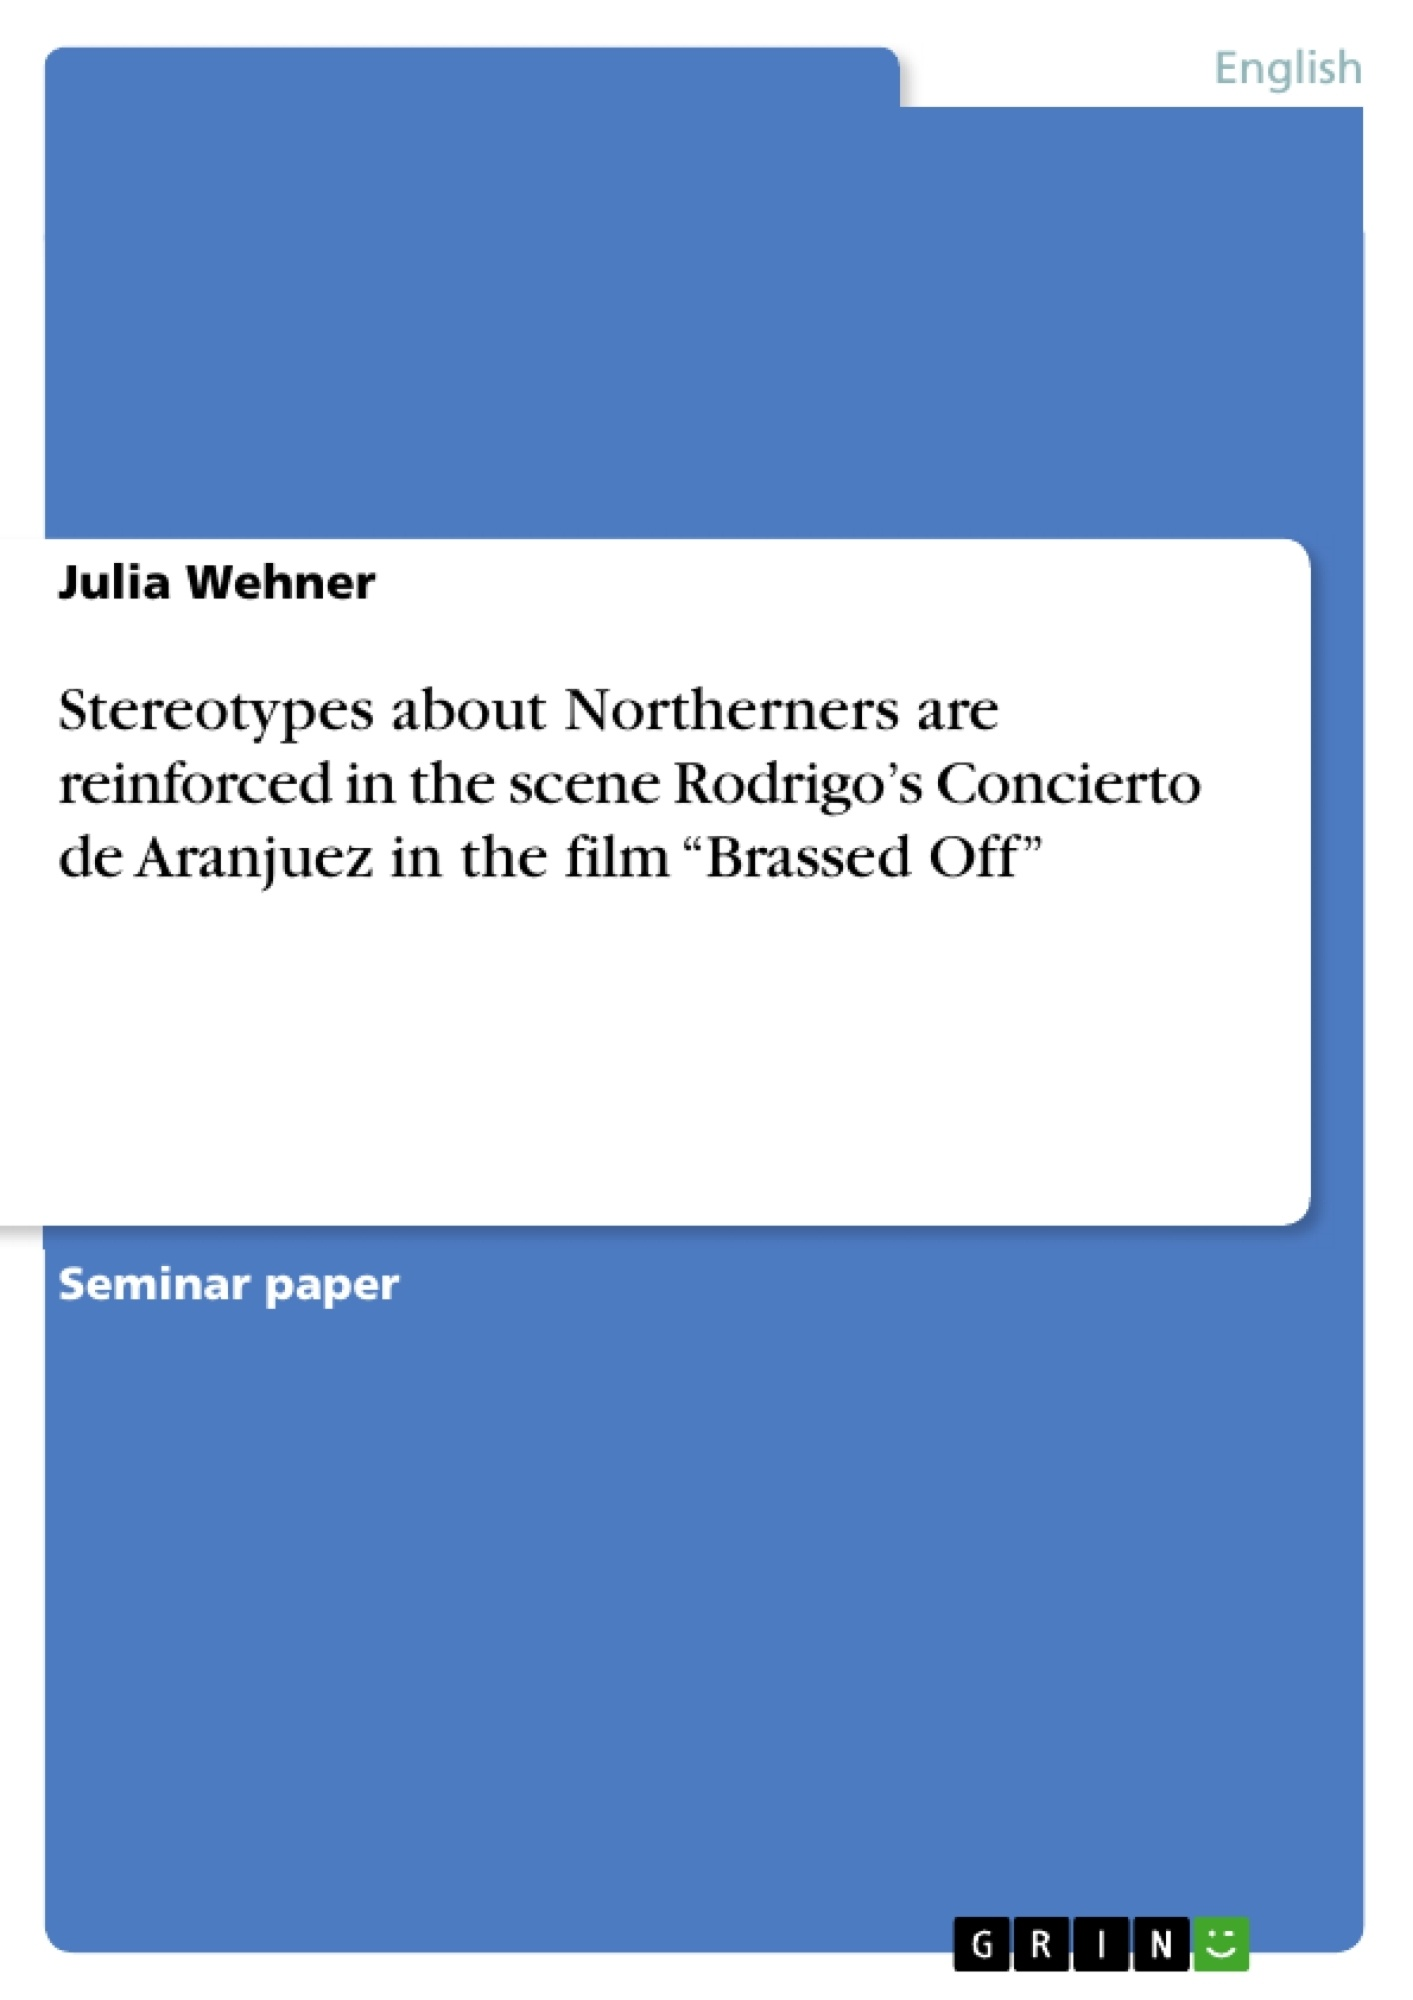 """Title: Stereotypes about Northerners are reinforced in the scene Rodrigo's Concierto de Aranjuez in the film """"Brassed Off"""""""